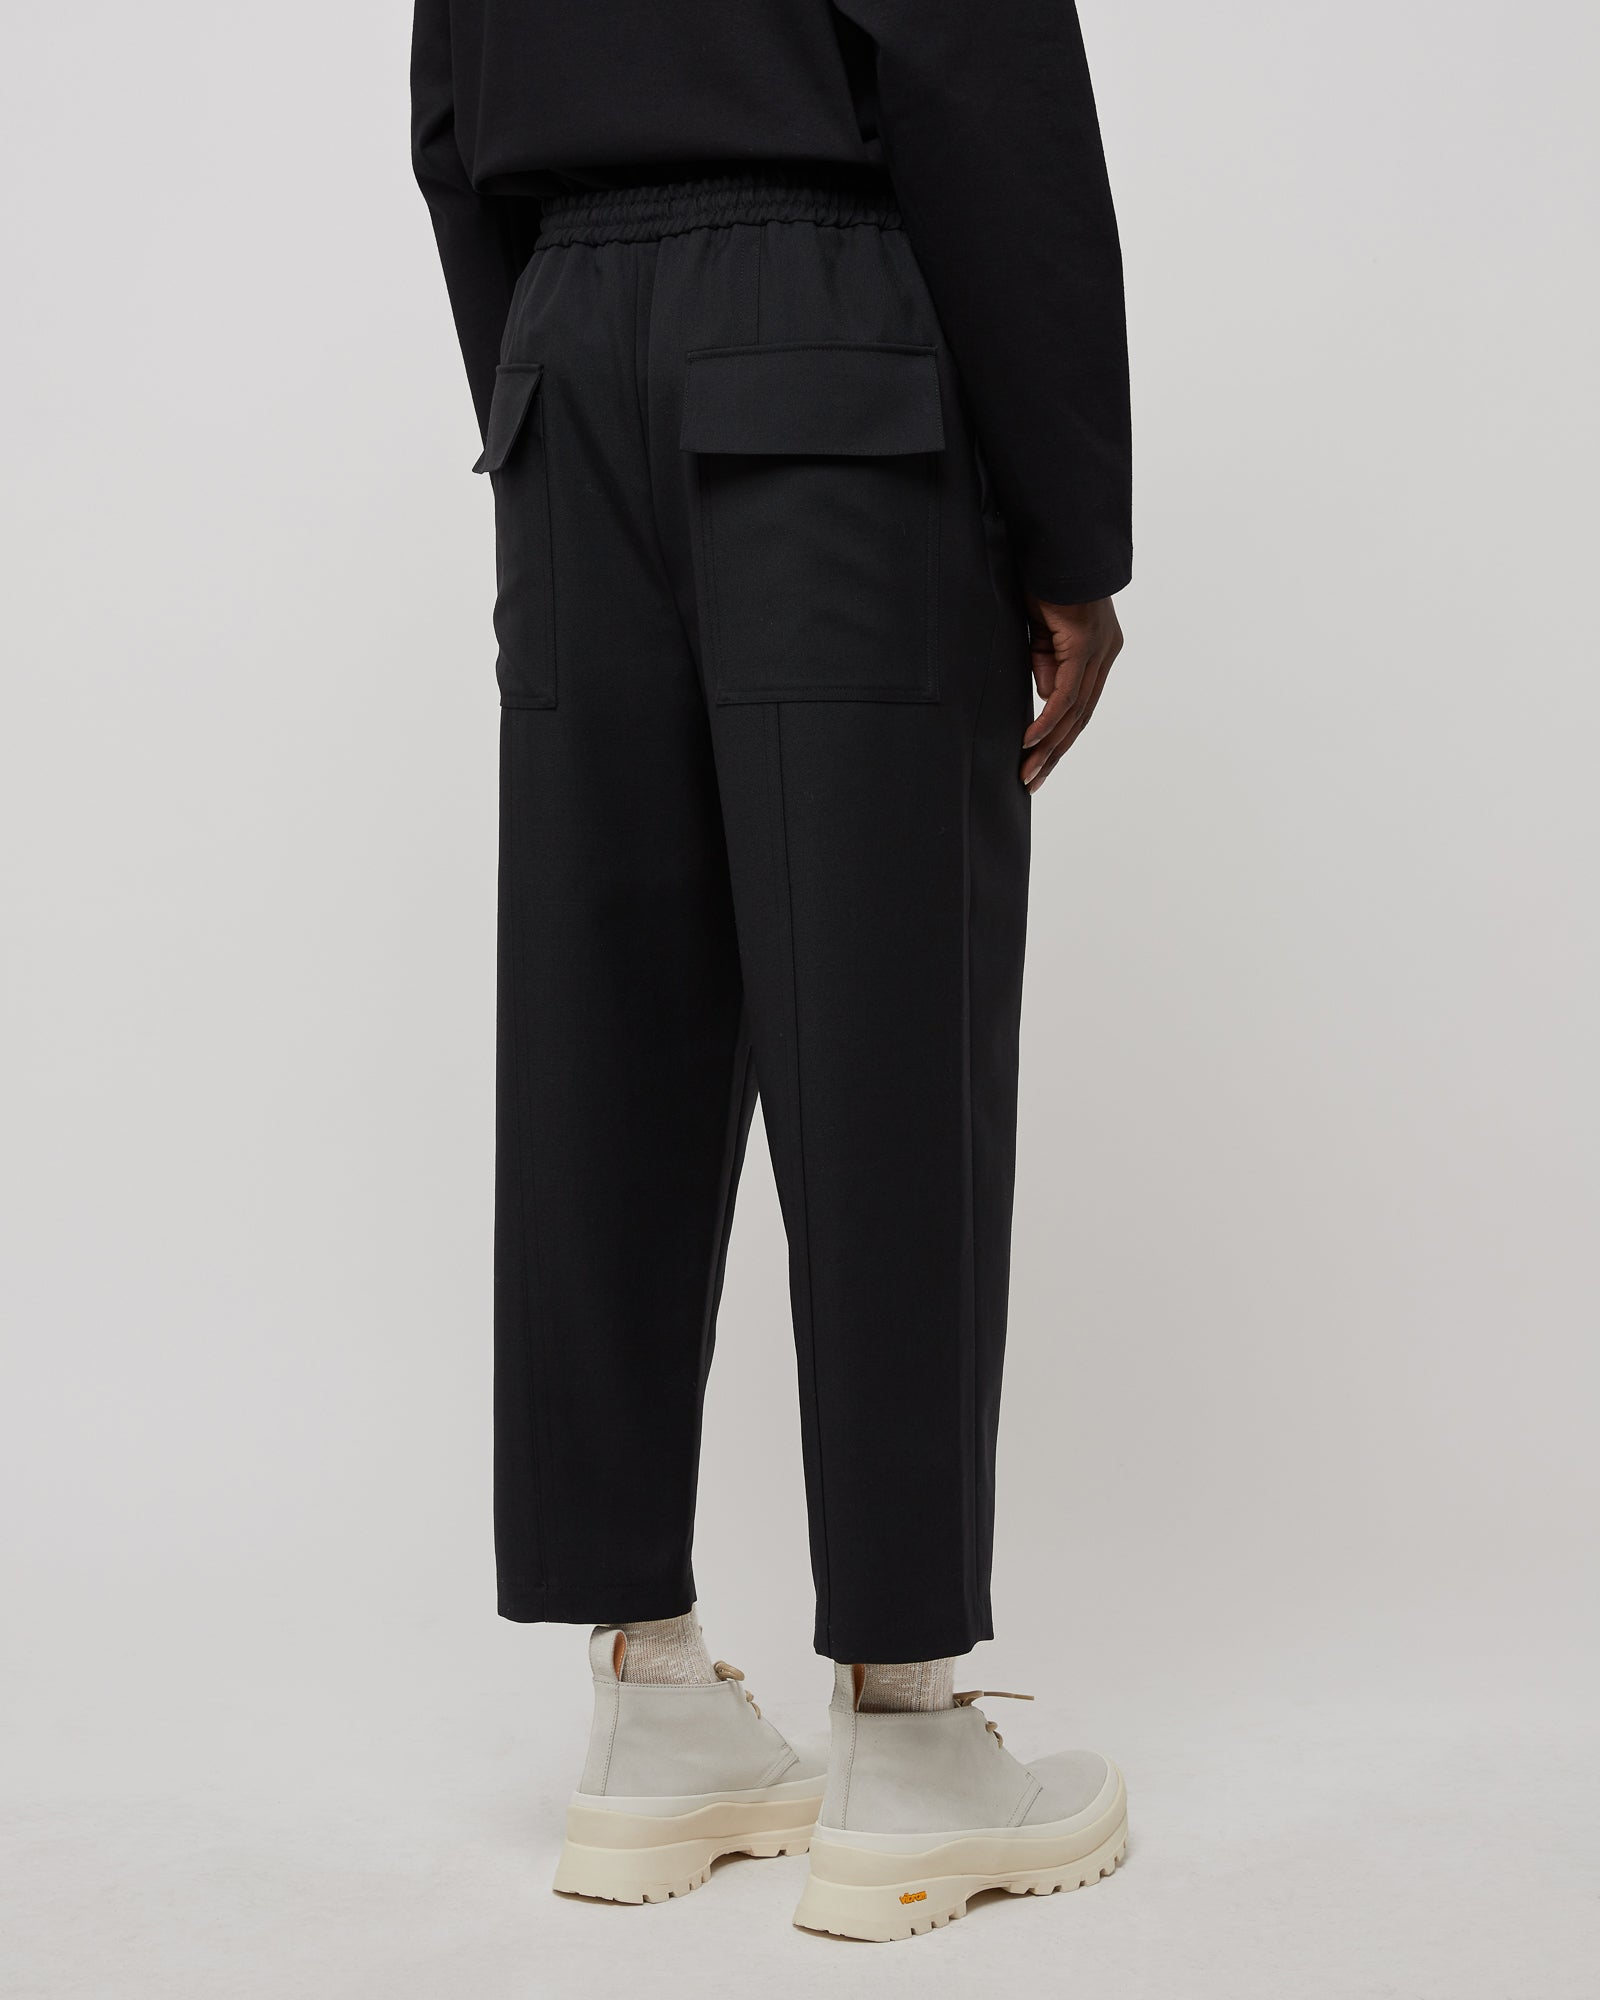 Alem Pants in Black